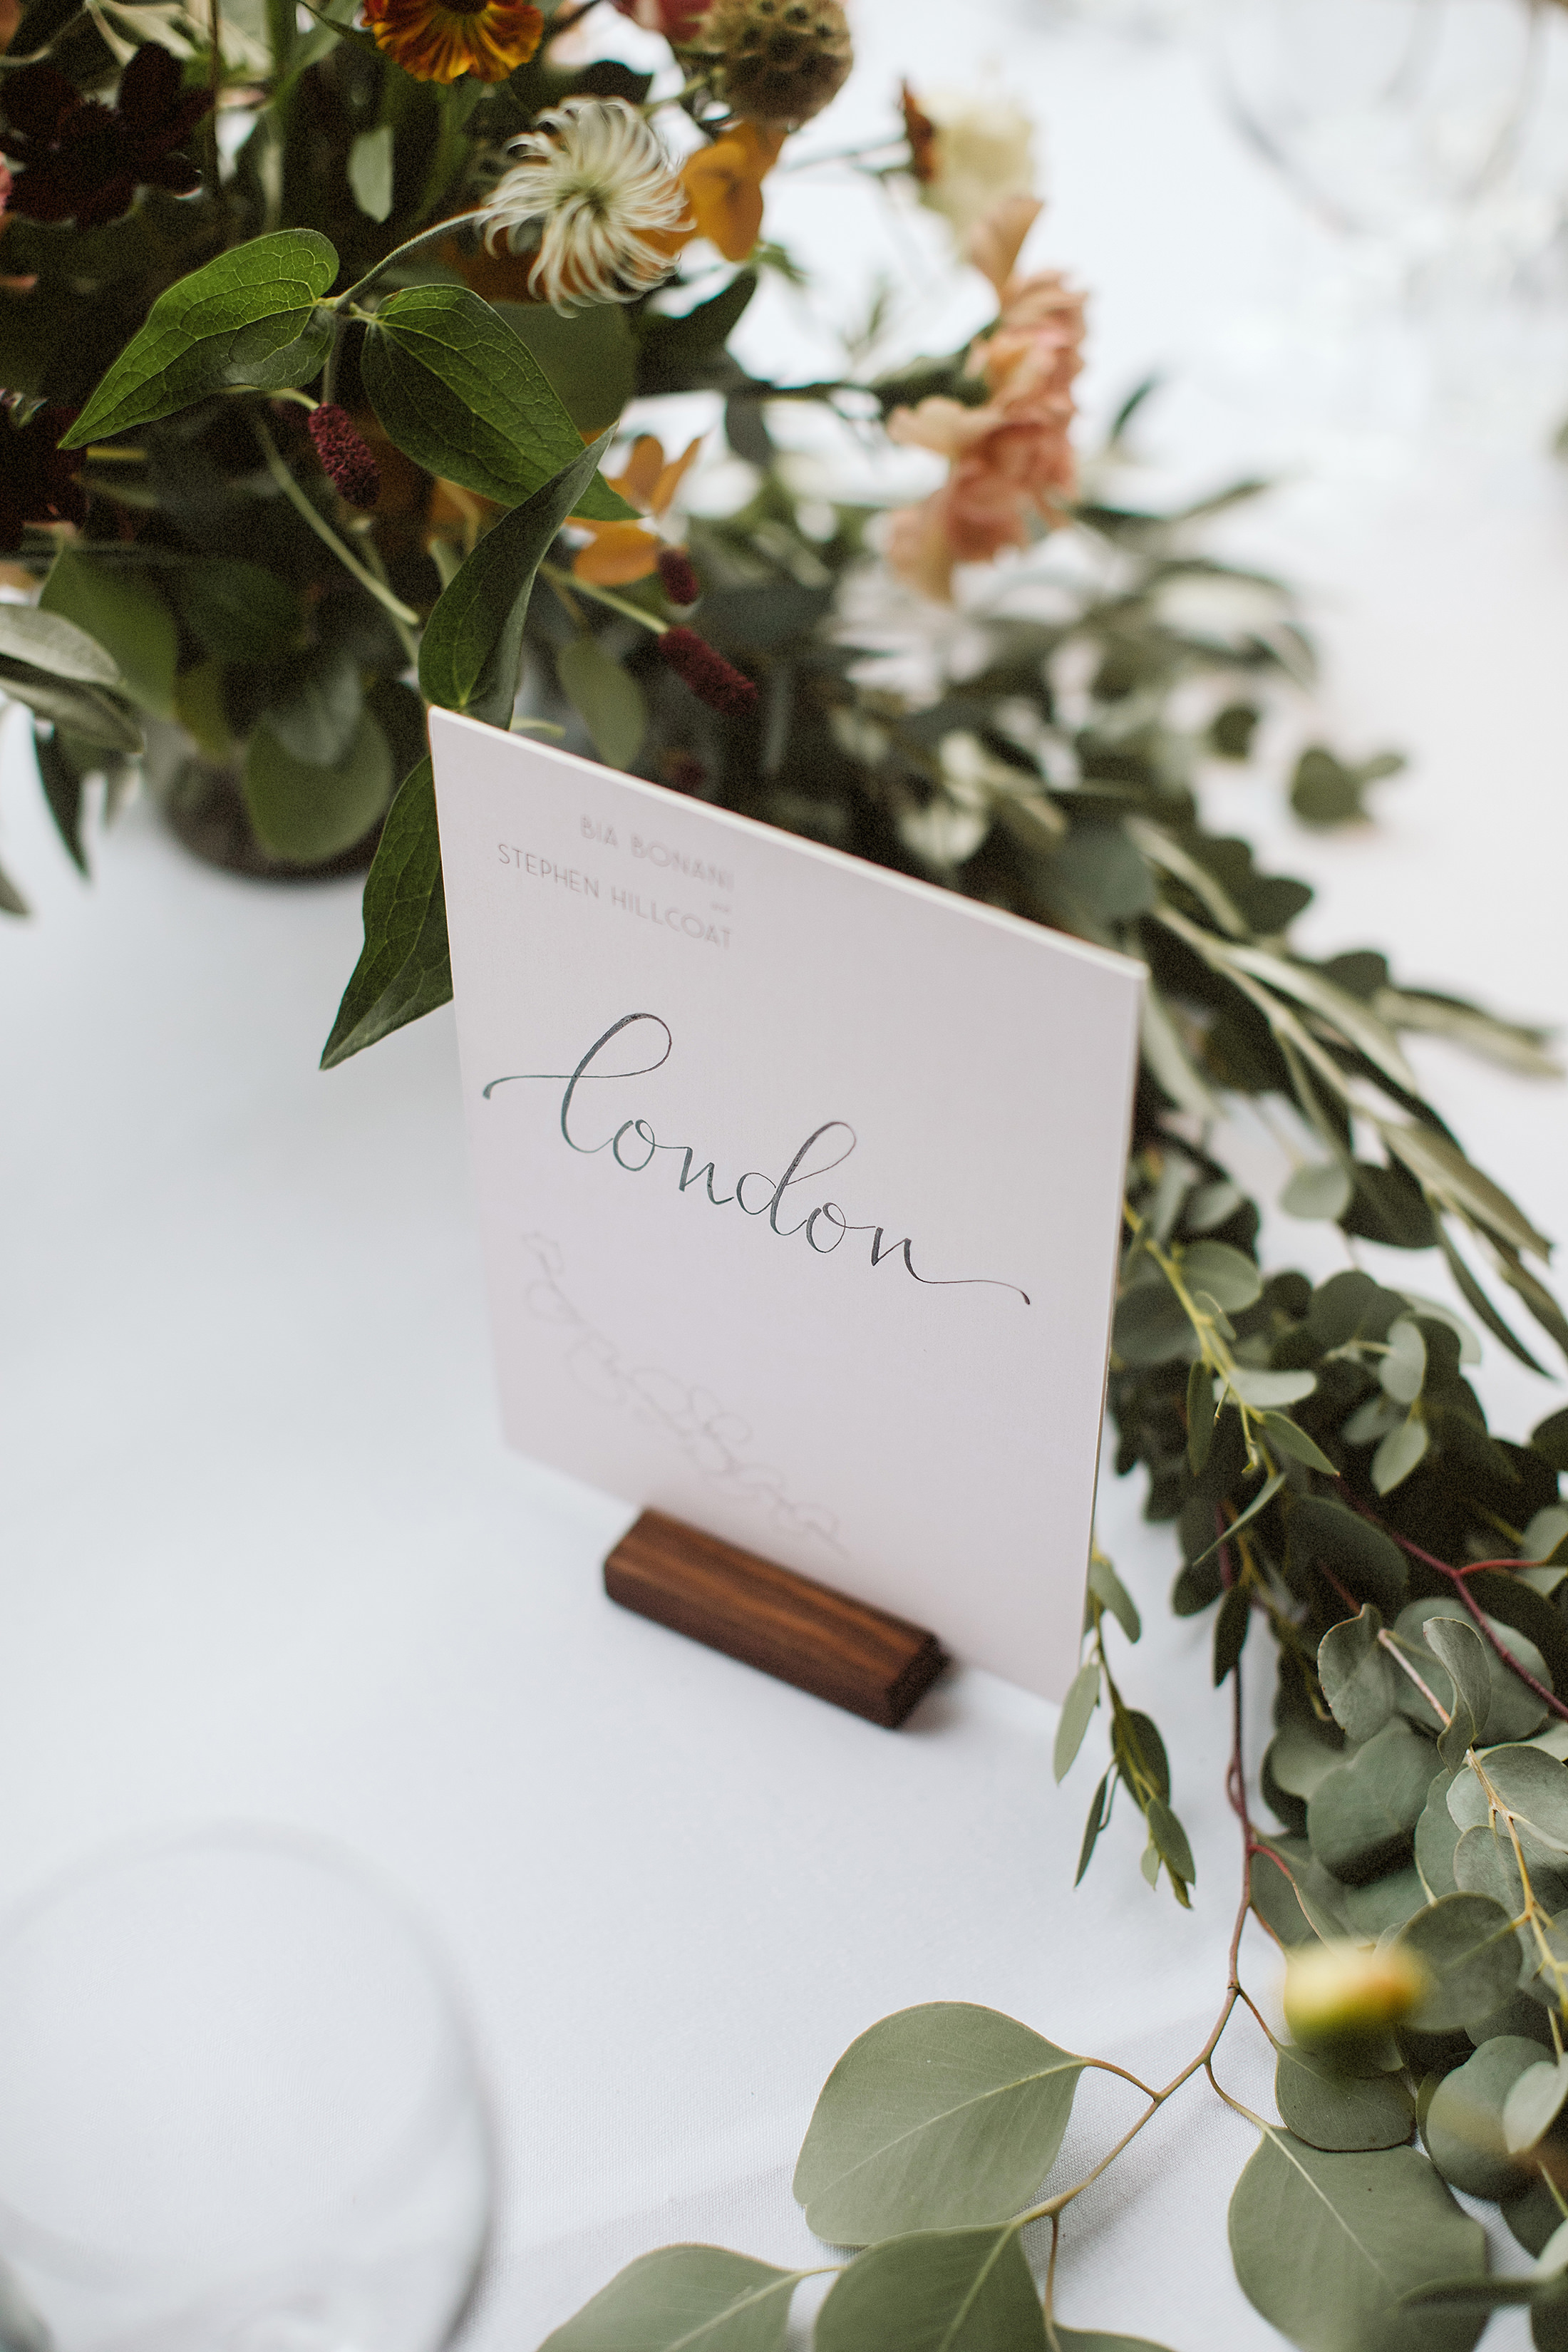 Nice Bunch Ethical floral design studio flower garden by Sula British luxury place settings eucalyptus Stone Barn Cotswolds wedding